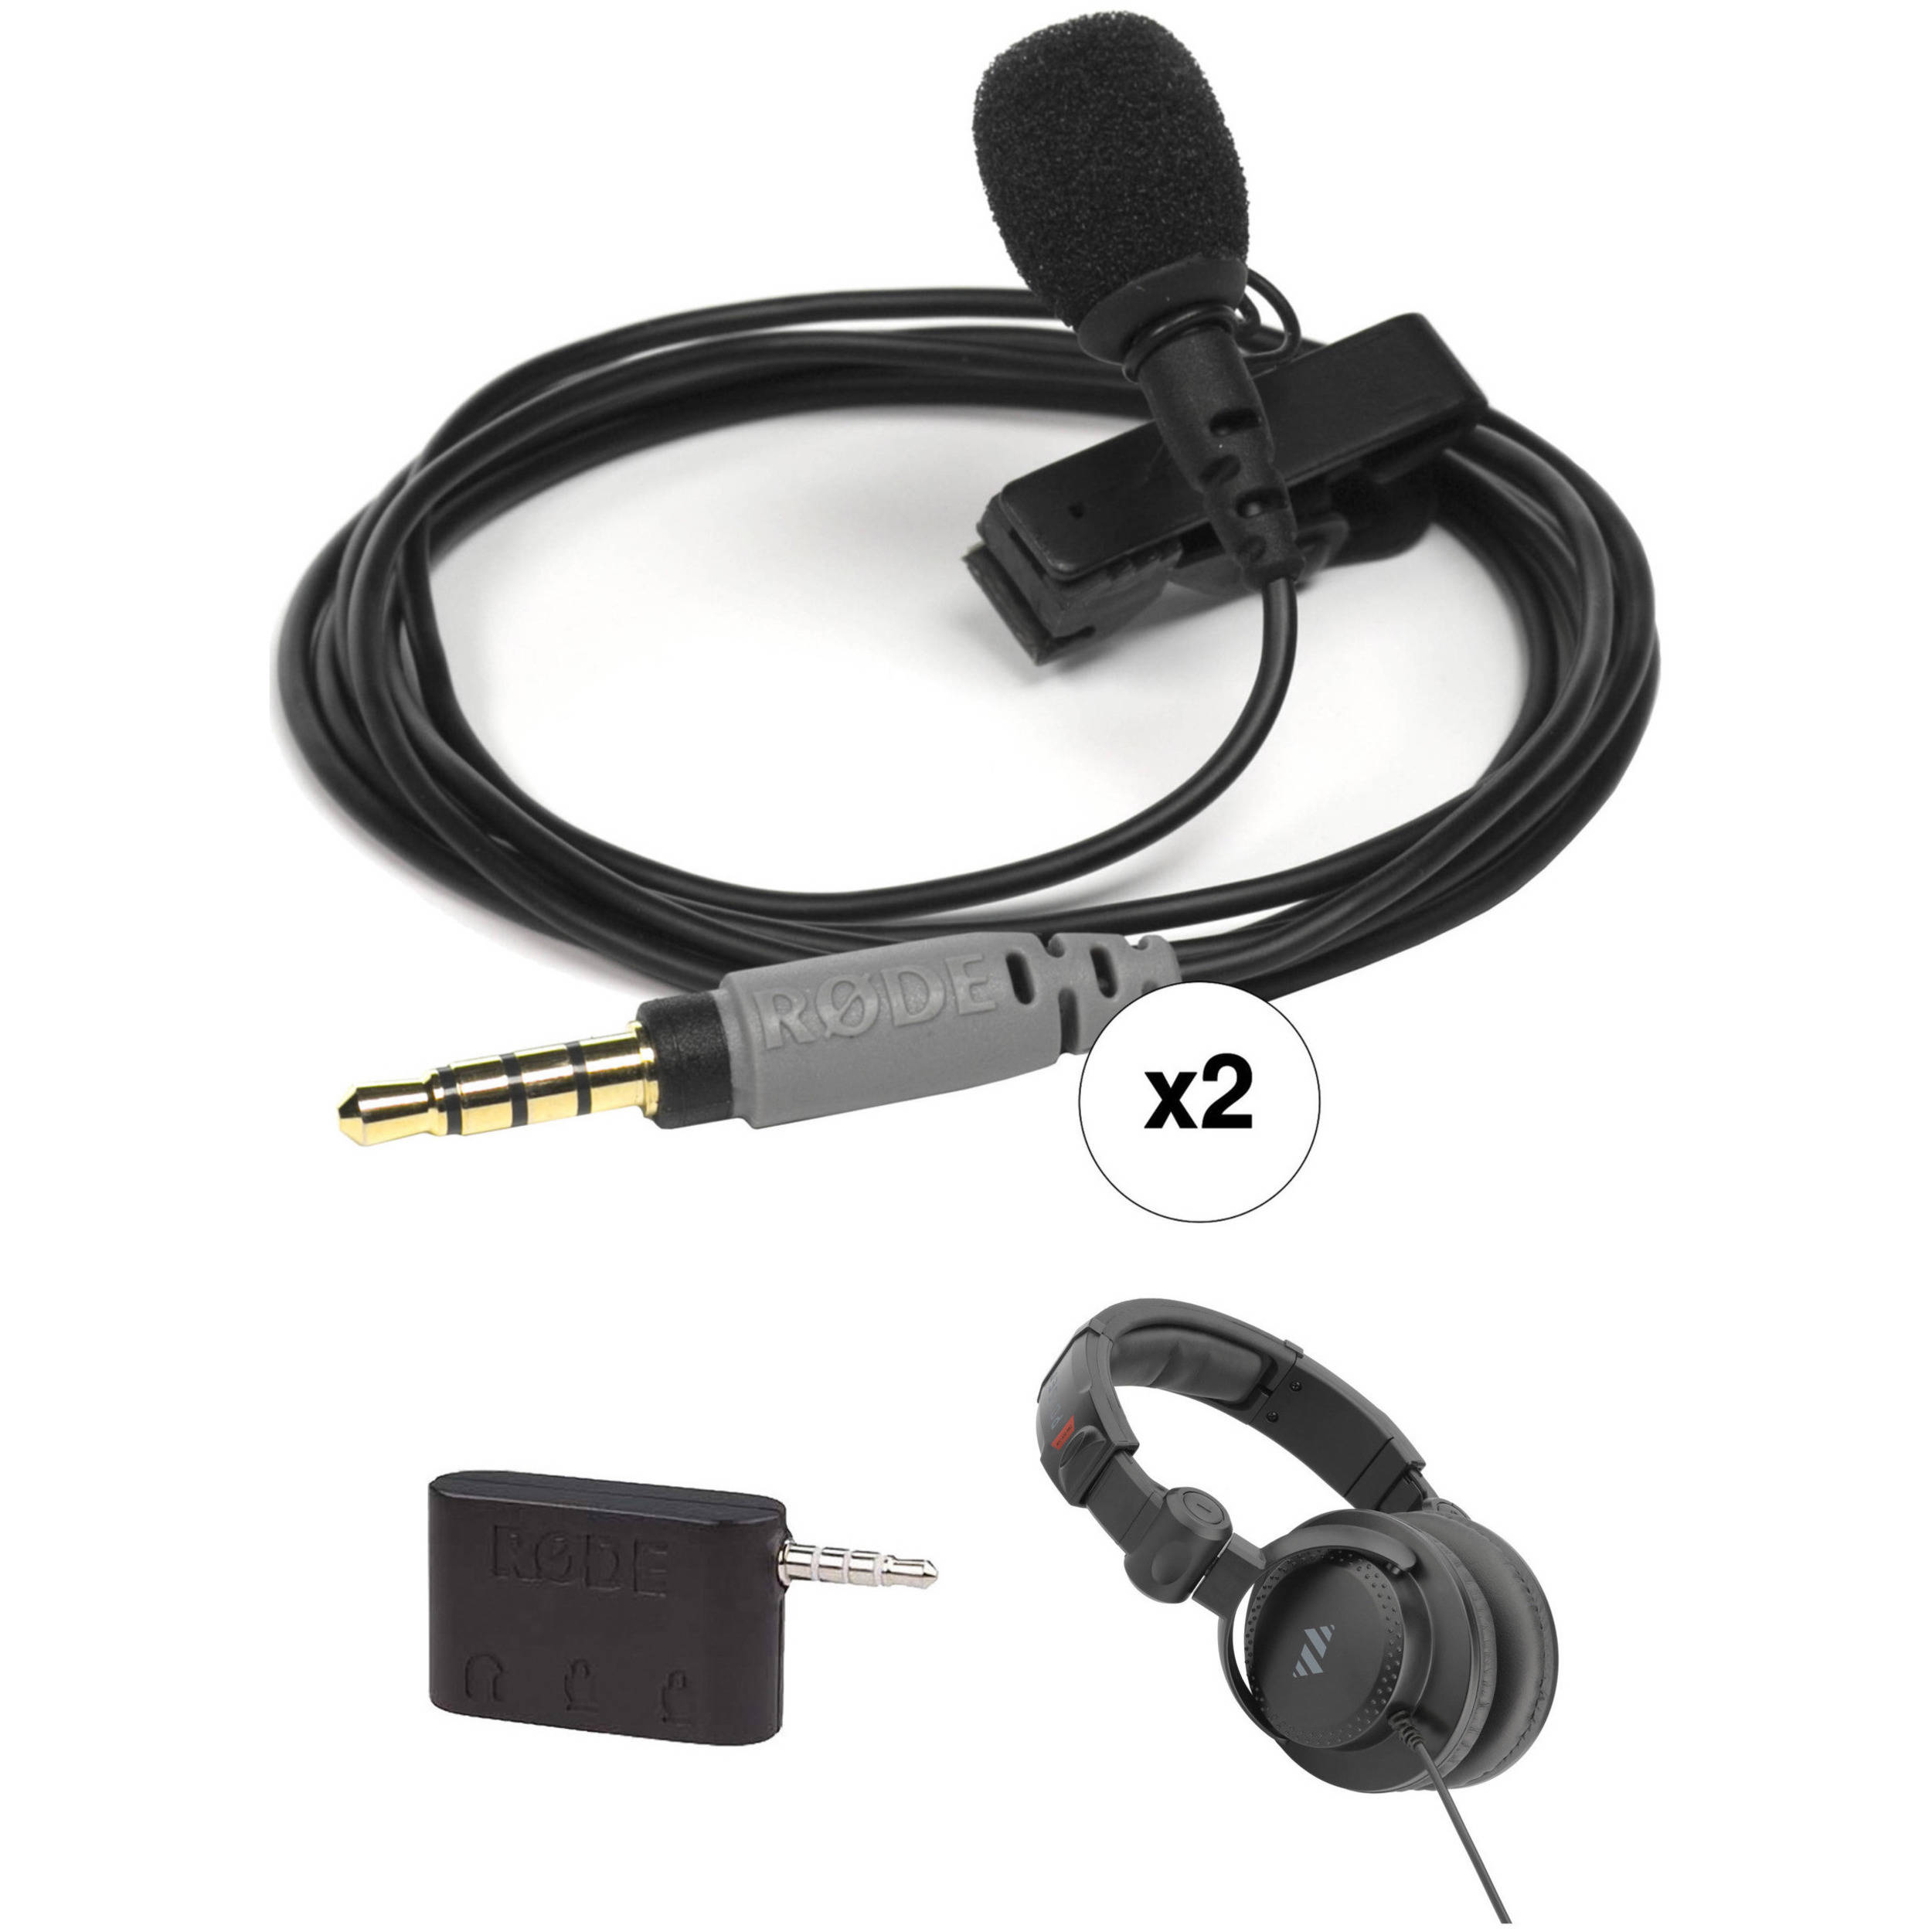 PC Computer Headset to 3.5mm Smartphone Adapter for iPhone Androi